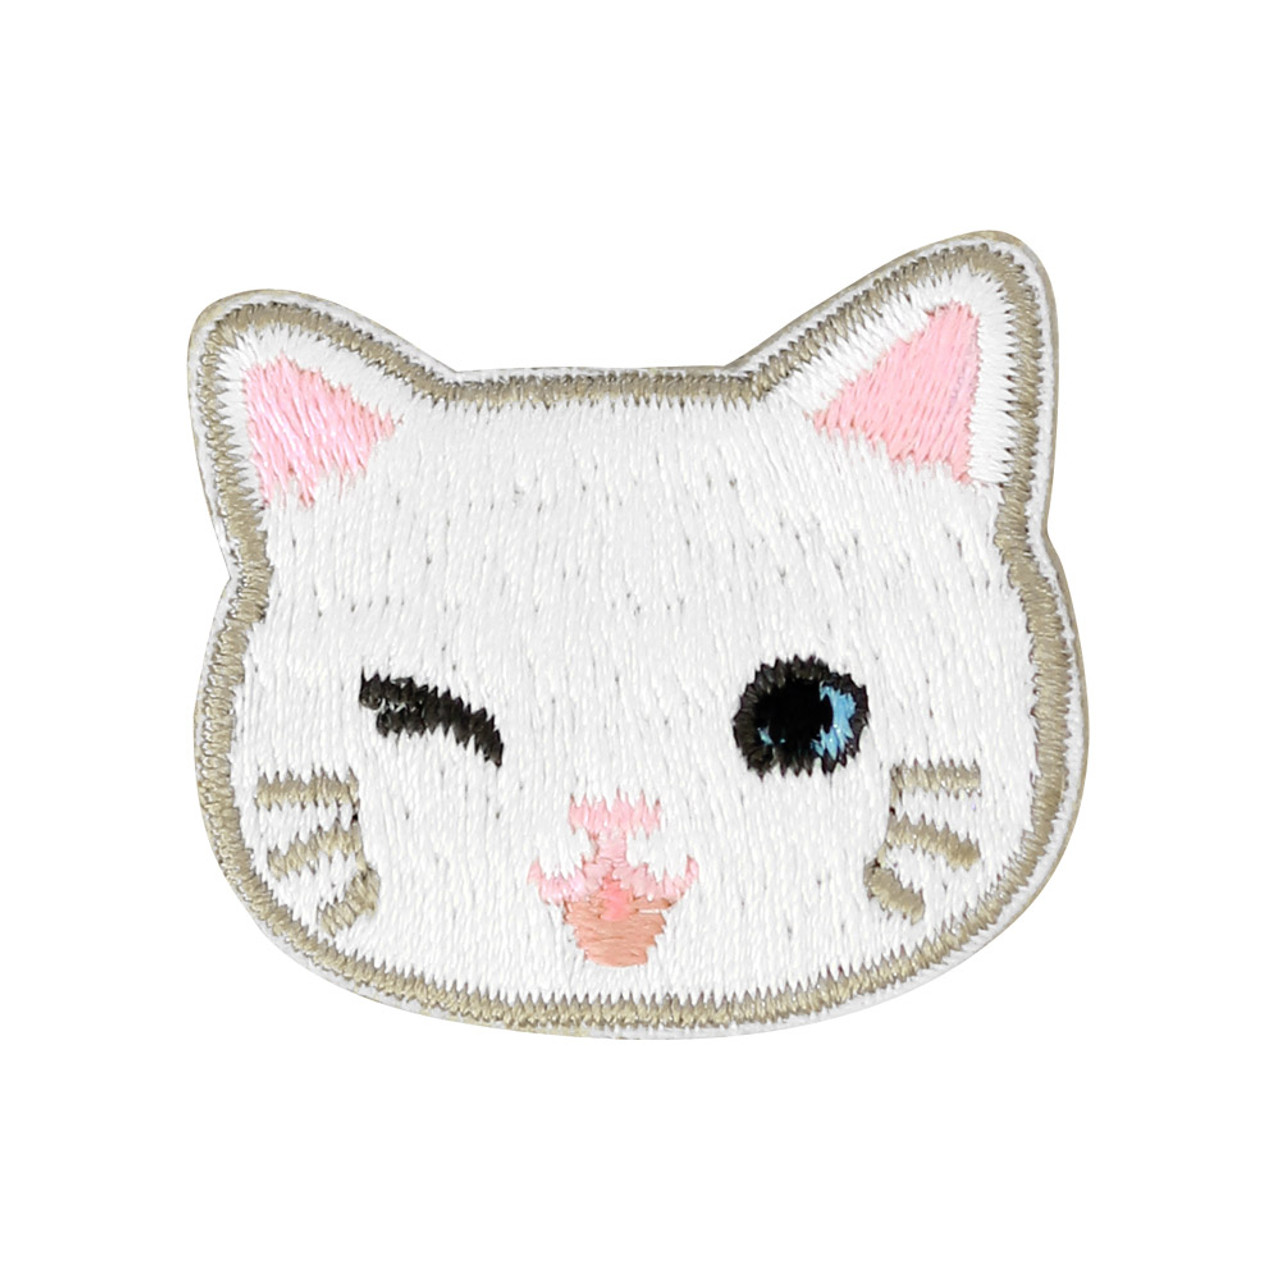 Cats Family White Cat Iron On Patch ( Front View )